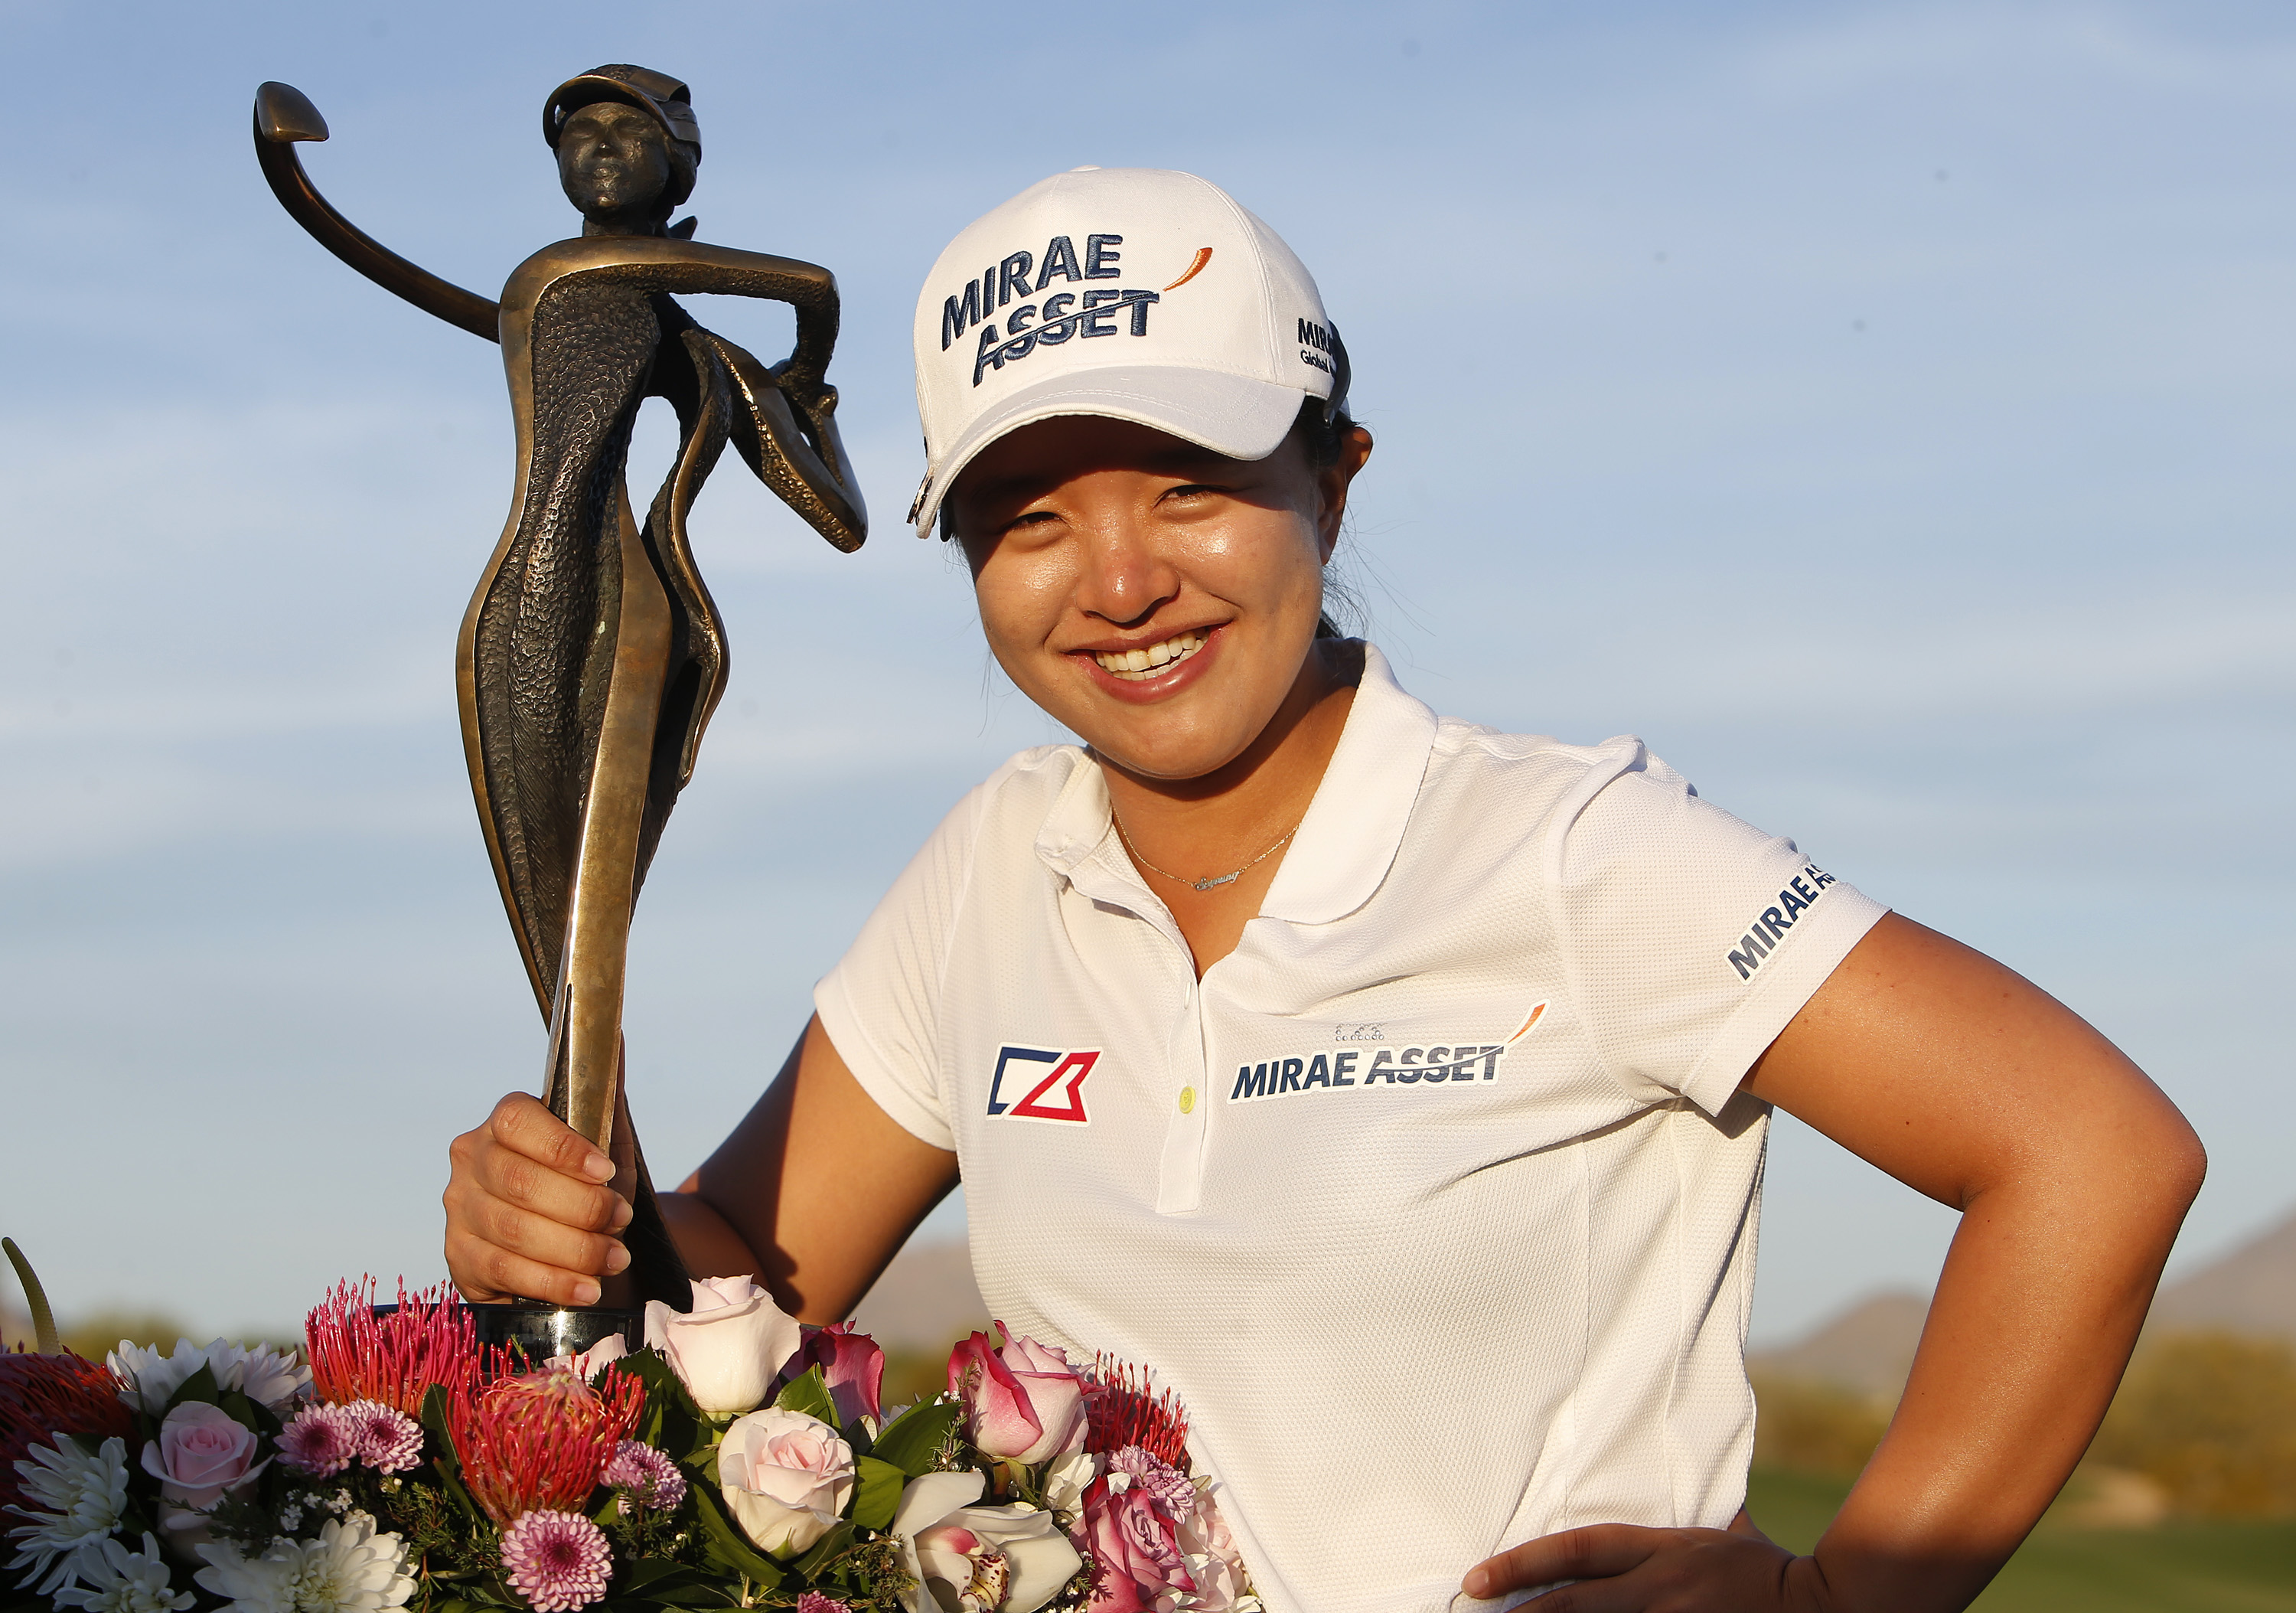 Kim Sei-young, of South Korea, poses with the trophy after winning the JTBC Founders Cup golf tournament, Sunday, March 20, 2016, in Scottsdale, Ariz. (AP Photo/Rick